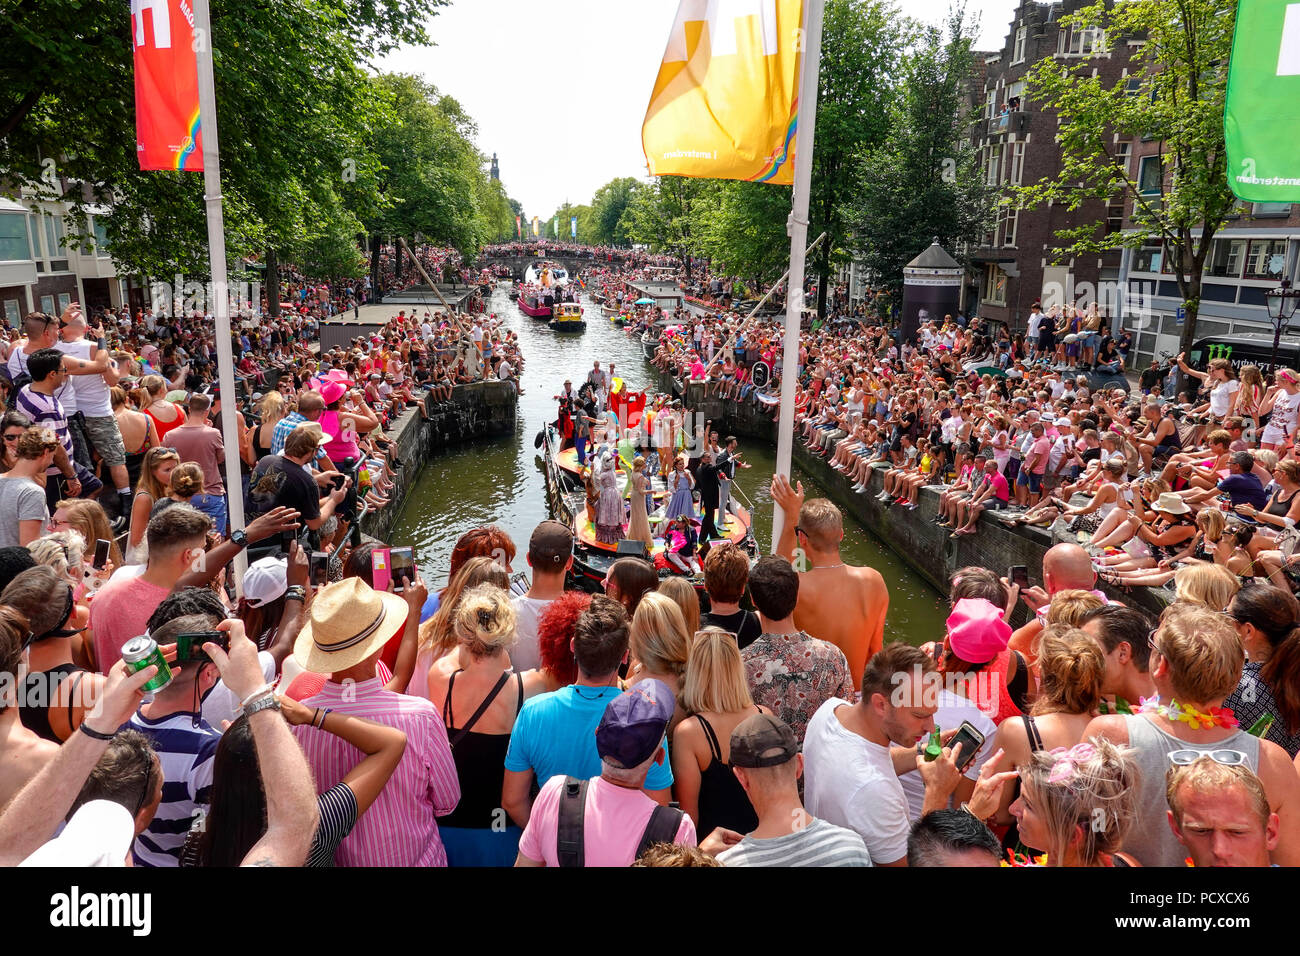 Amsterdam, Netherlands. August 4, 2018, Hundreds of thousands of visitors lined the canals for the annual Canal Pride. Credit: Wiskerke/Alamy Live News Stock Photo